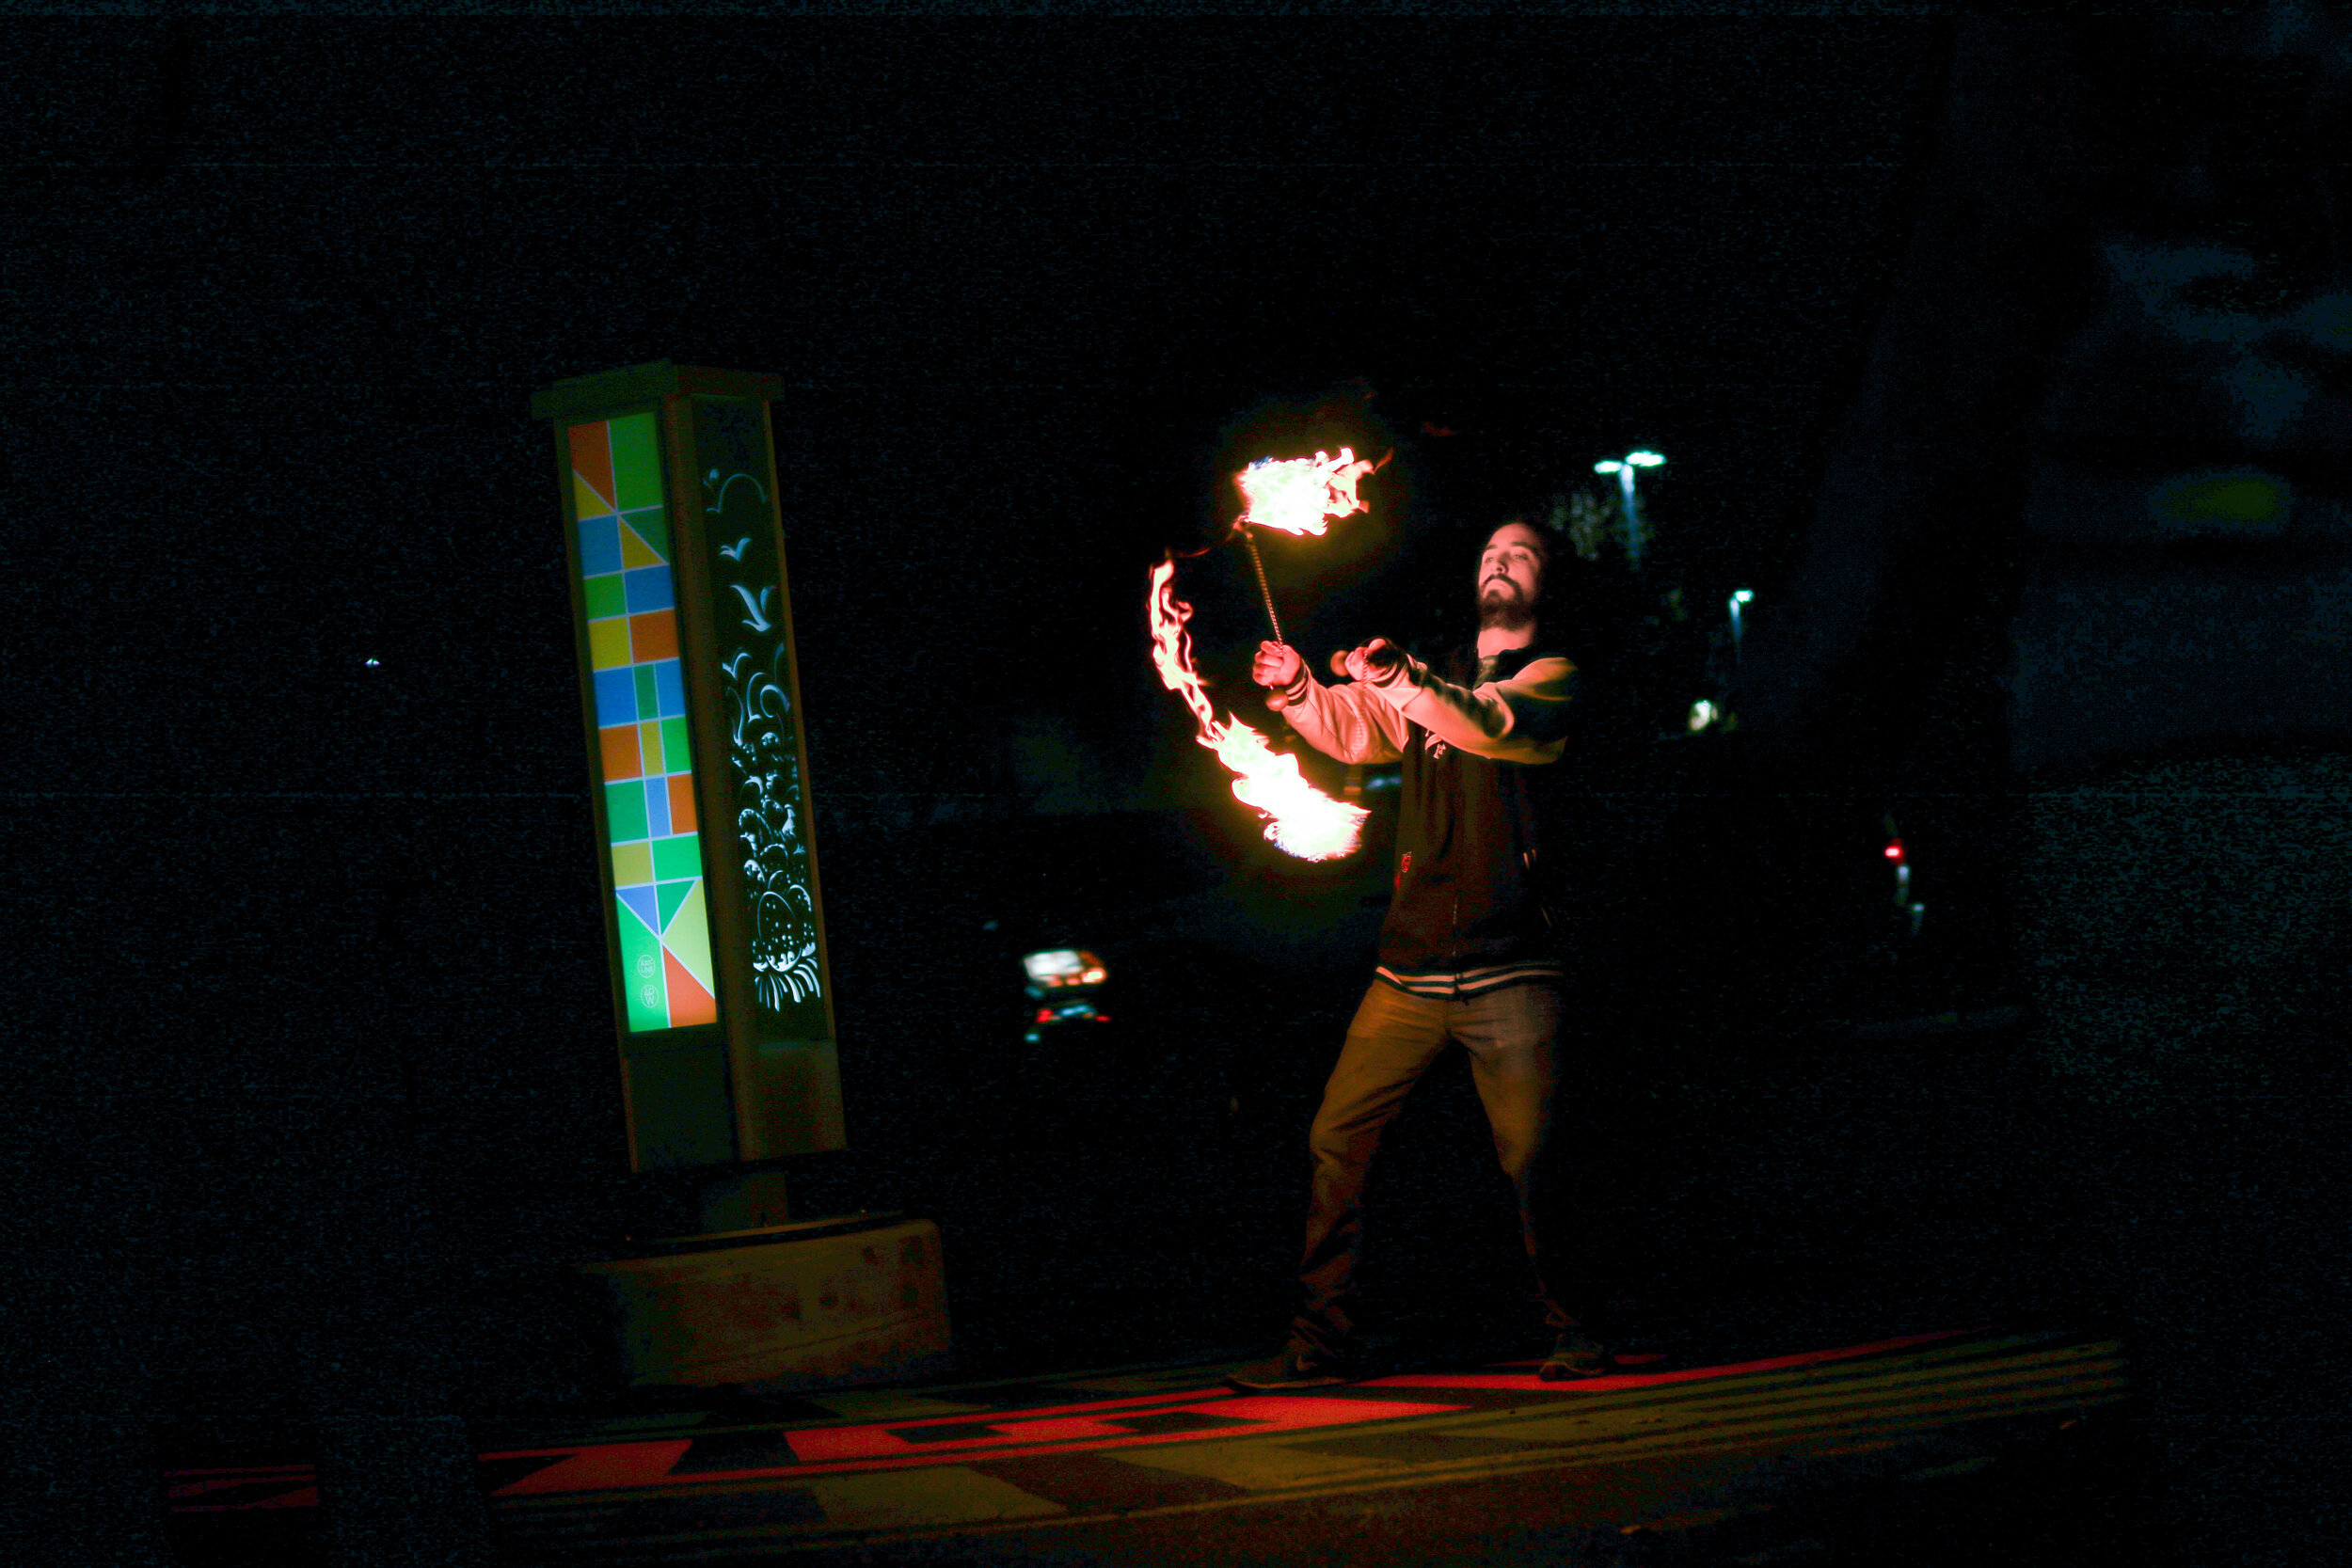 Fire Spinners light up the night sky at the 2018 Art Crawl. | Photo by 40 West Arts District